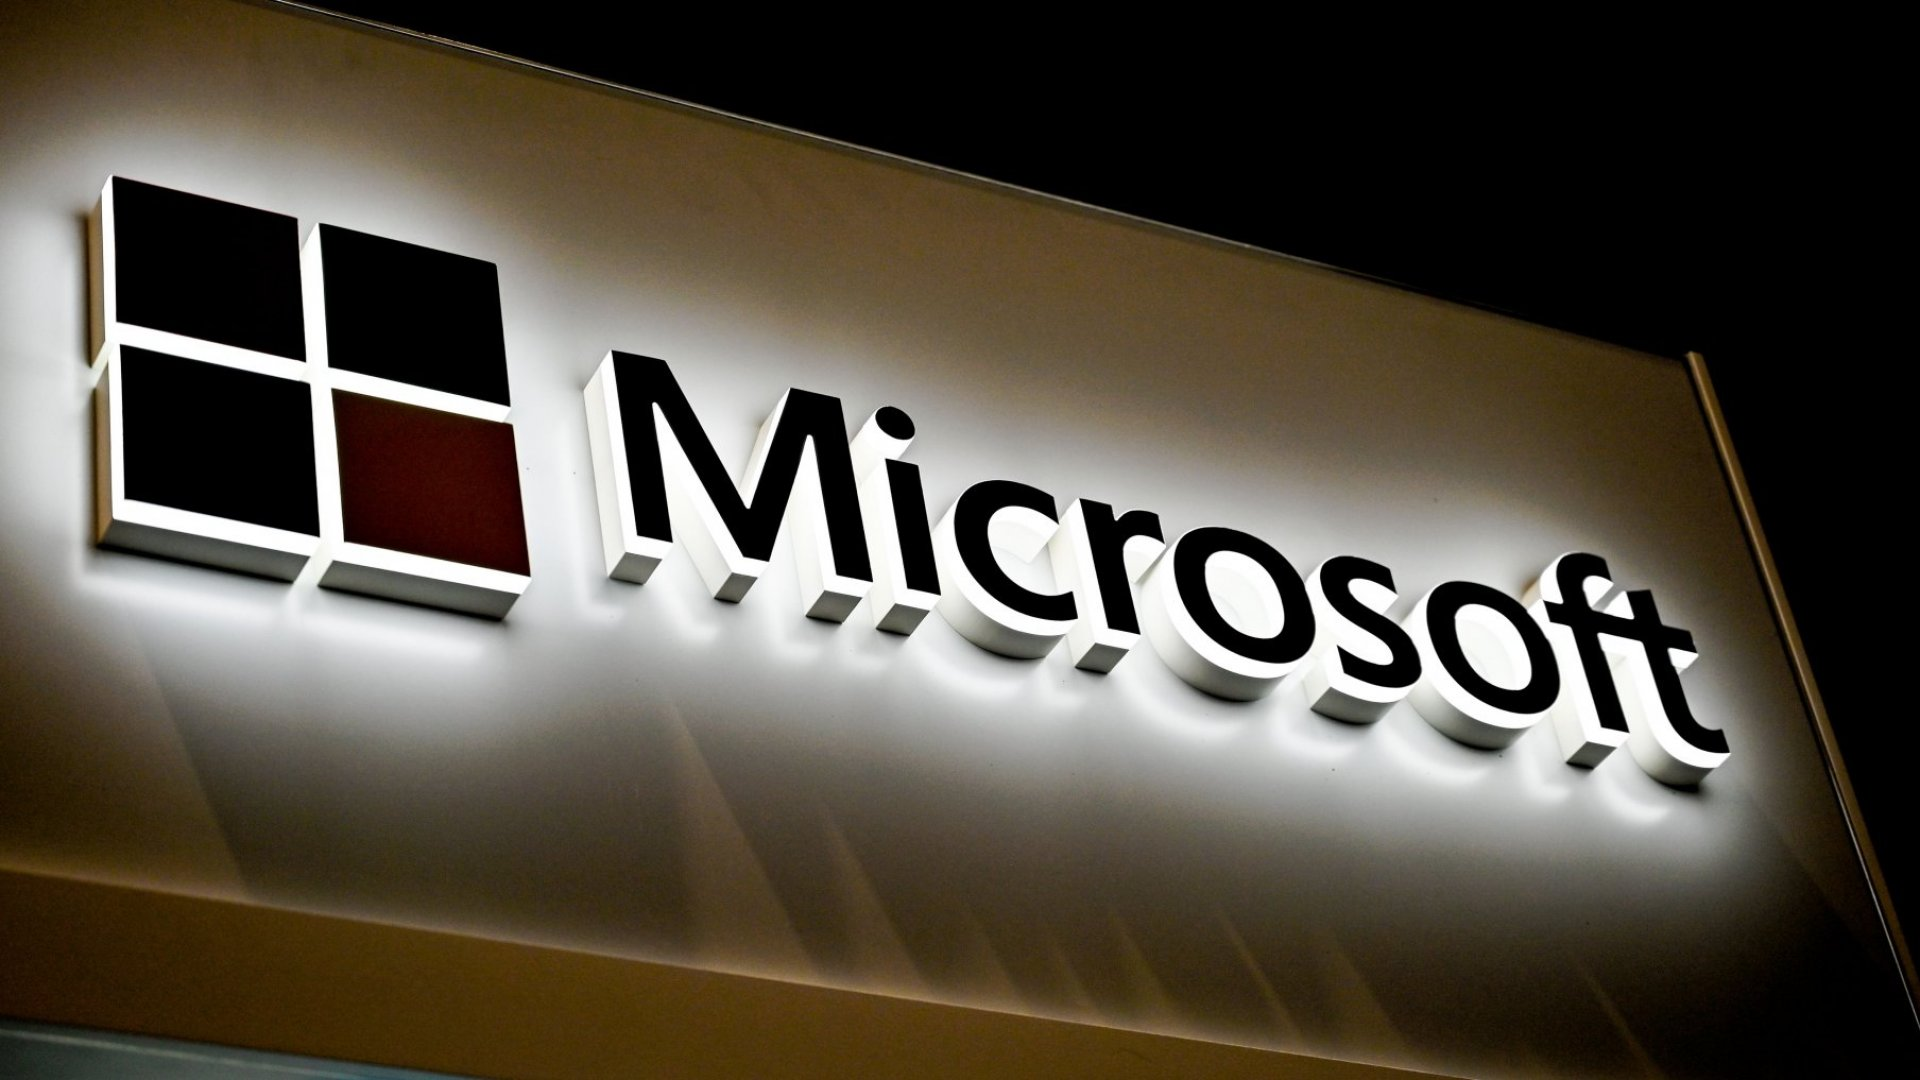 Microsoft Made the Simplest Mistake That Inconvenienced 20 Million Users